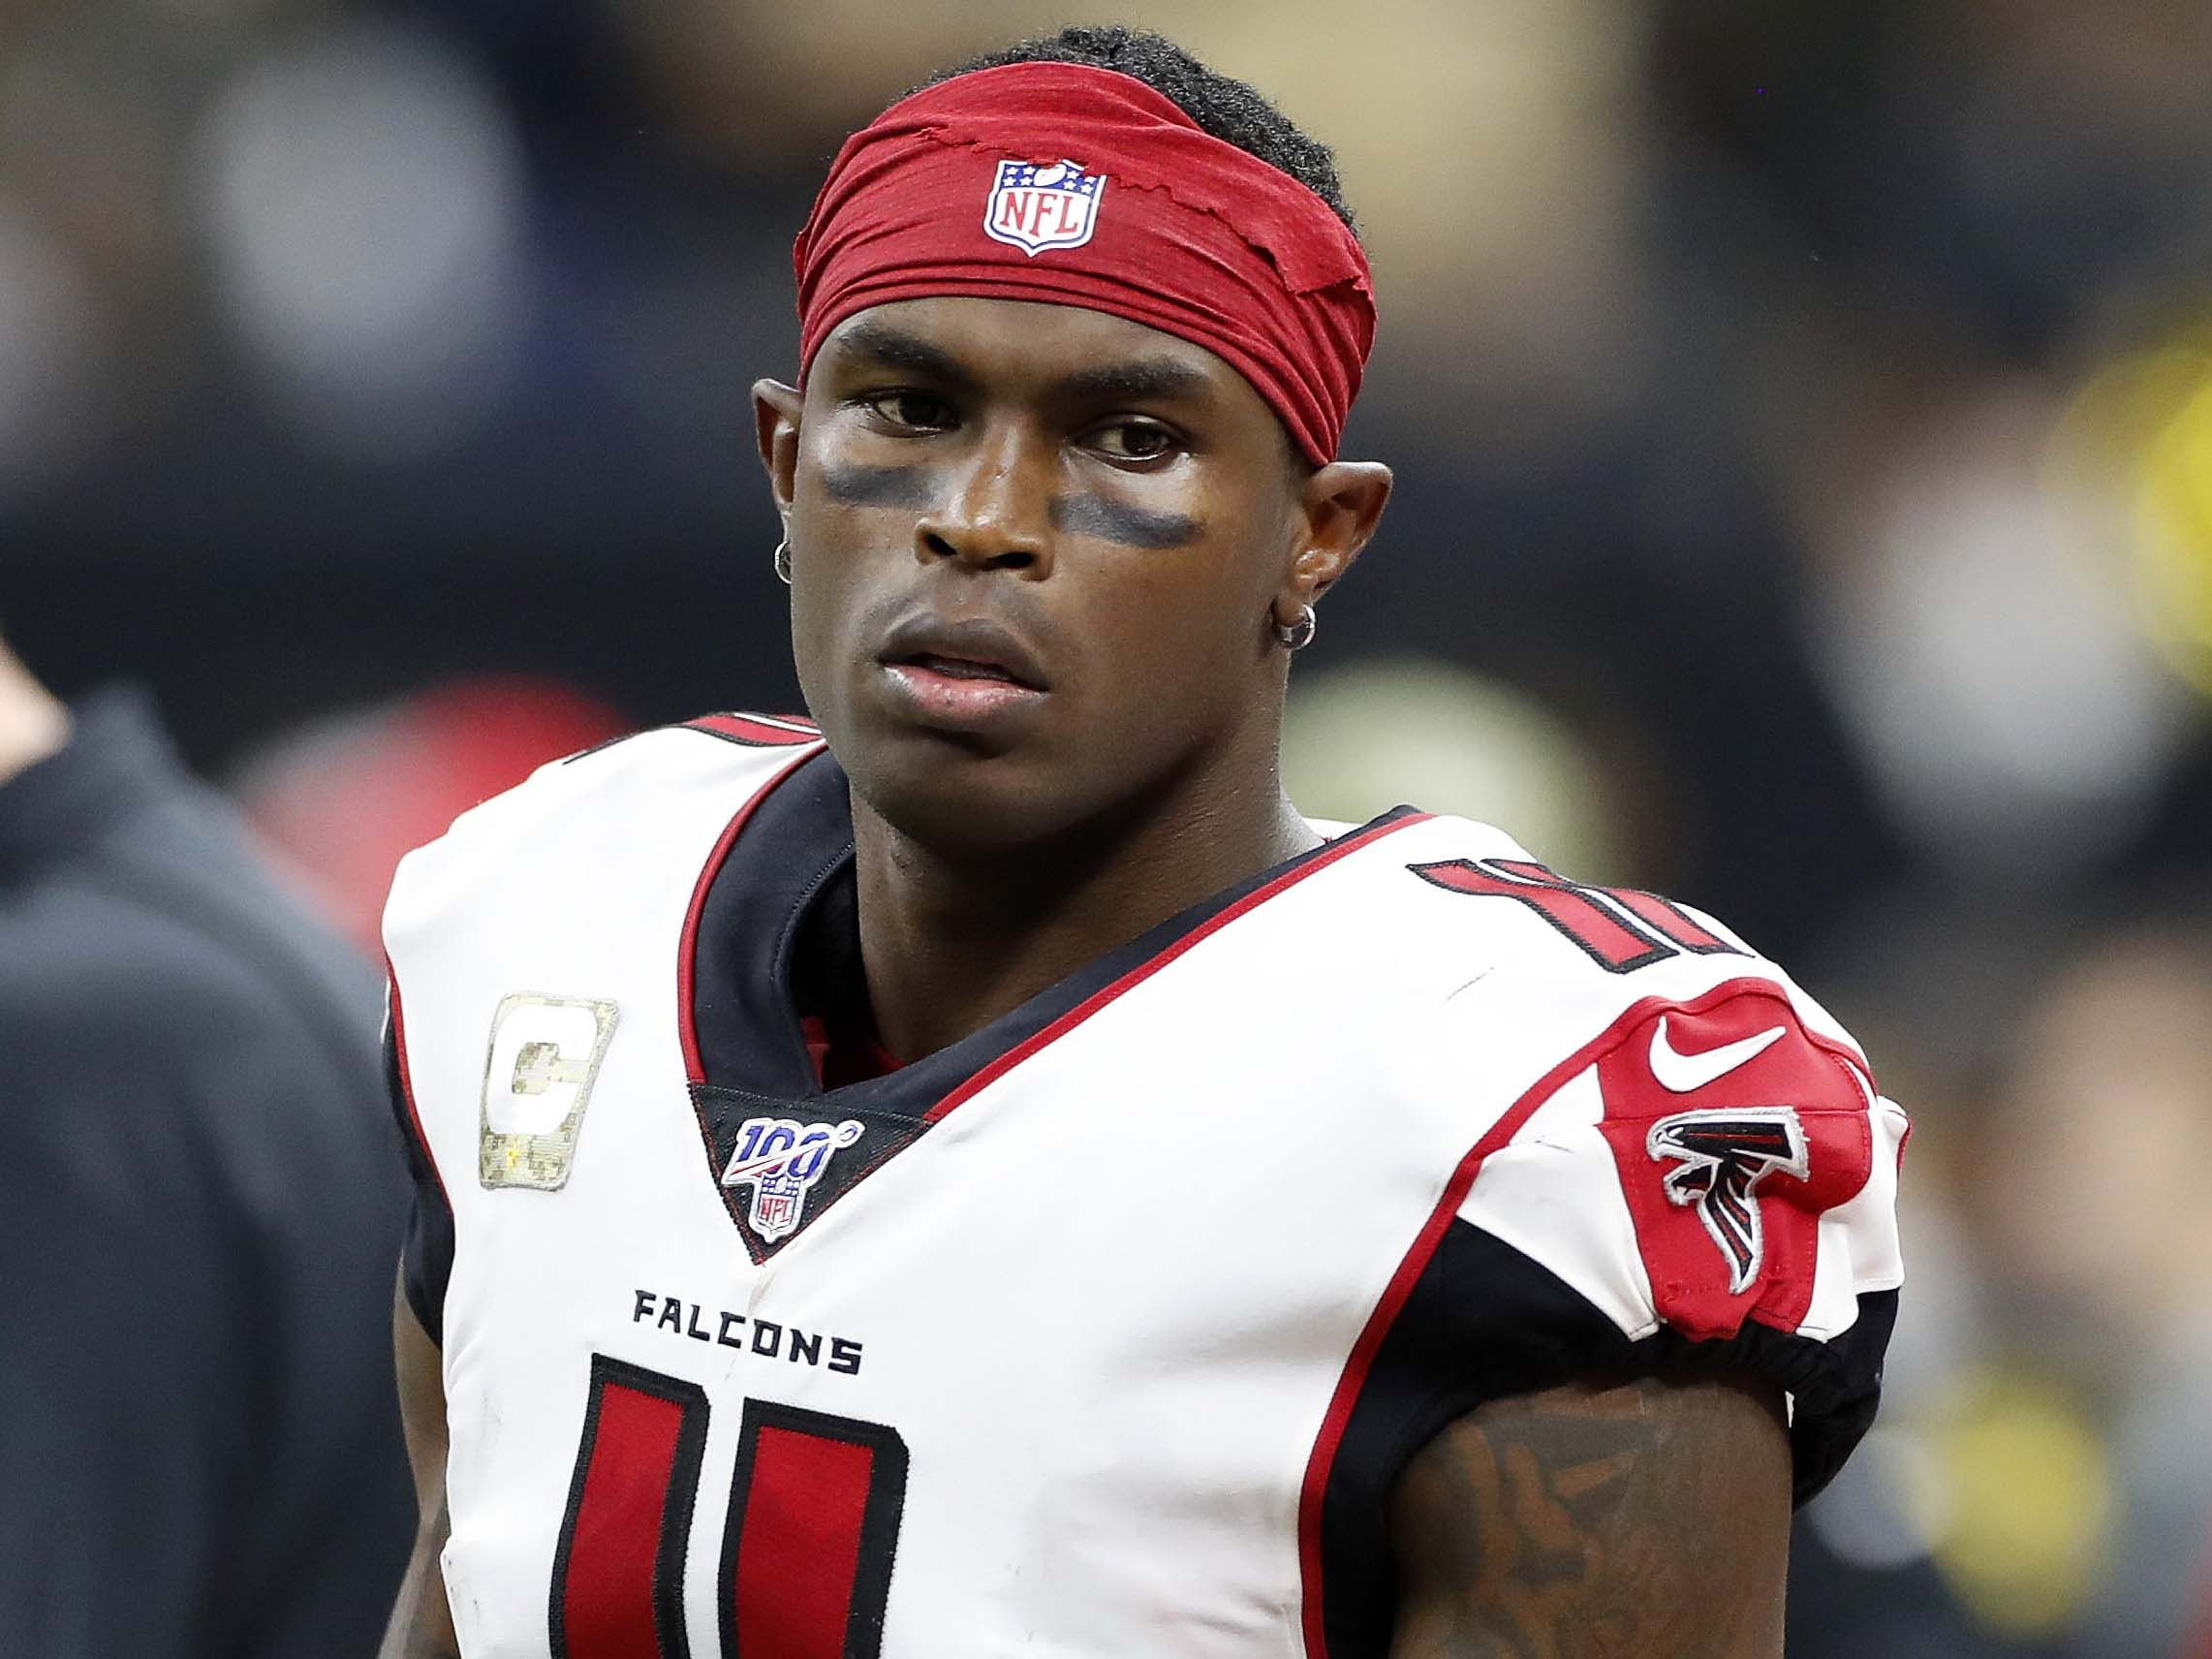 Injuries Julio Jones Inactive For Falcons Vs Saints National Football League News The Falcons Announced National Football National Football League Nfl News